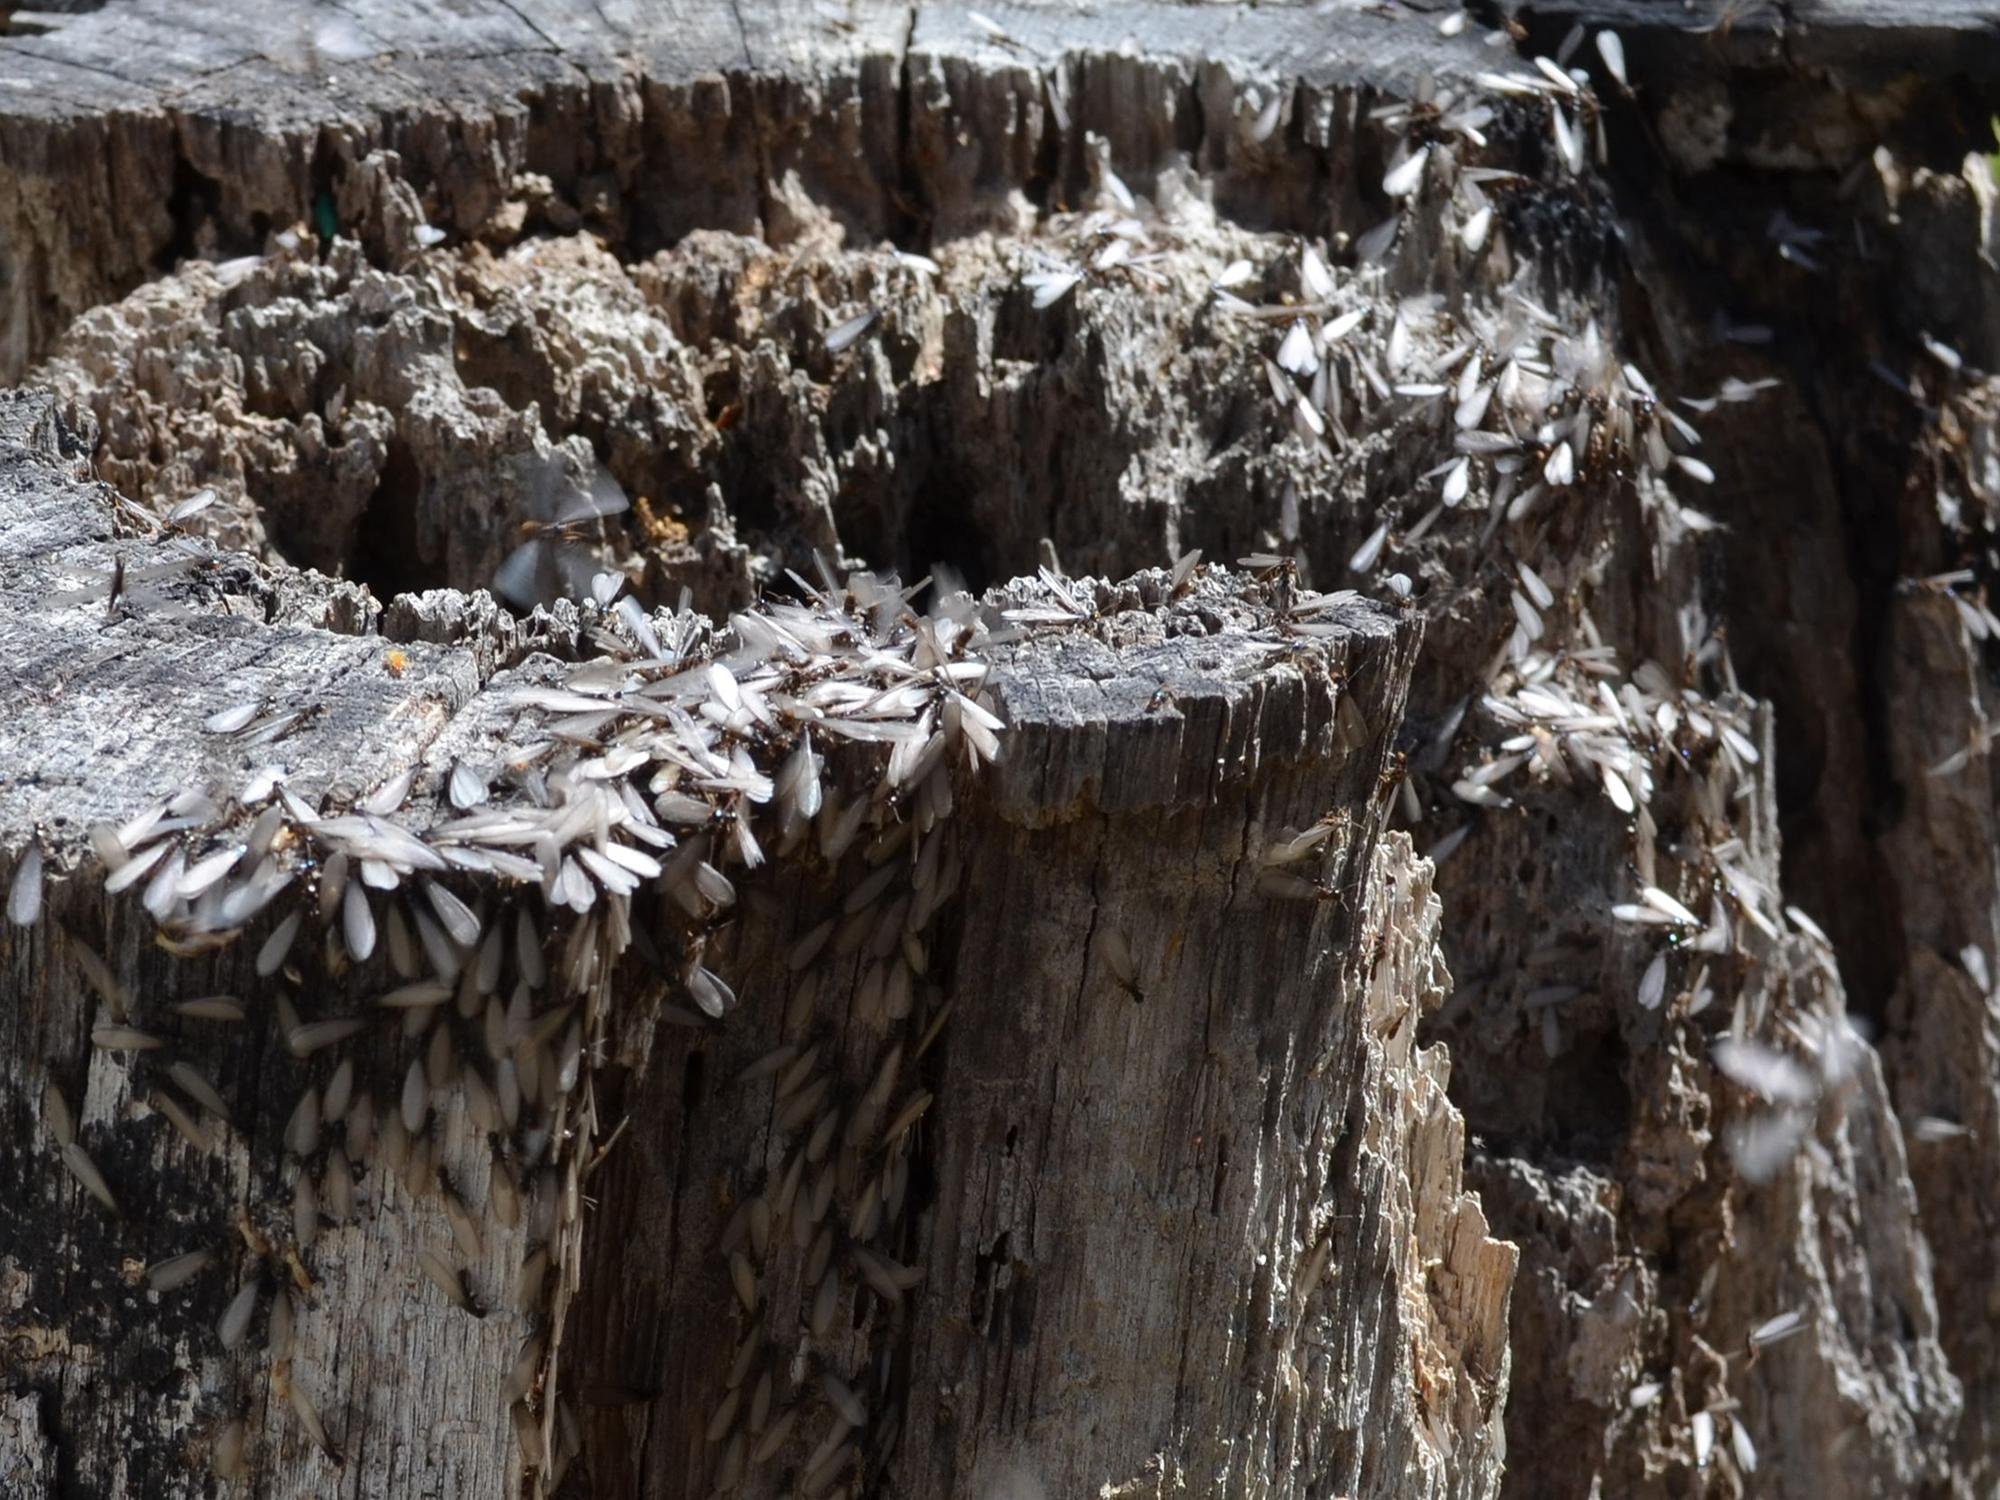 Termites swarming on this decaying tree stump are a healthy part of nature, but homeowners must take steps to make sure they do not infest houses. (Photo by MSU Extension Service/Linda Breazeale)